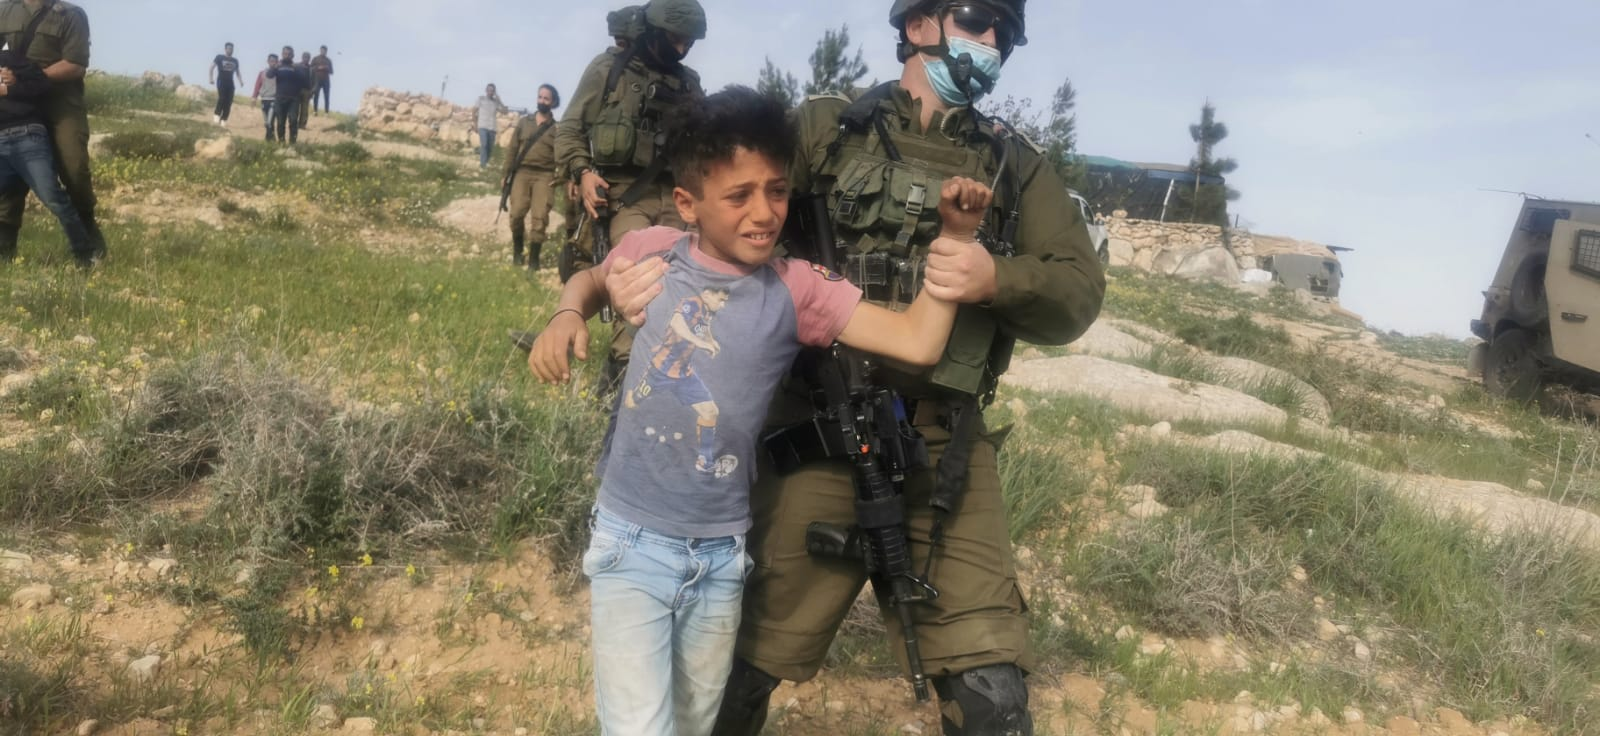 IDF detains 5 Palestinian children suspected of trespassing at West Bank  outpost | The Times of Israel